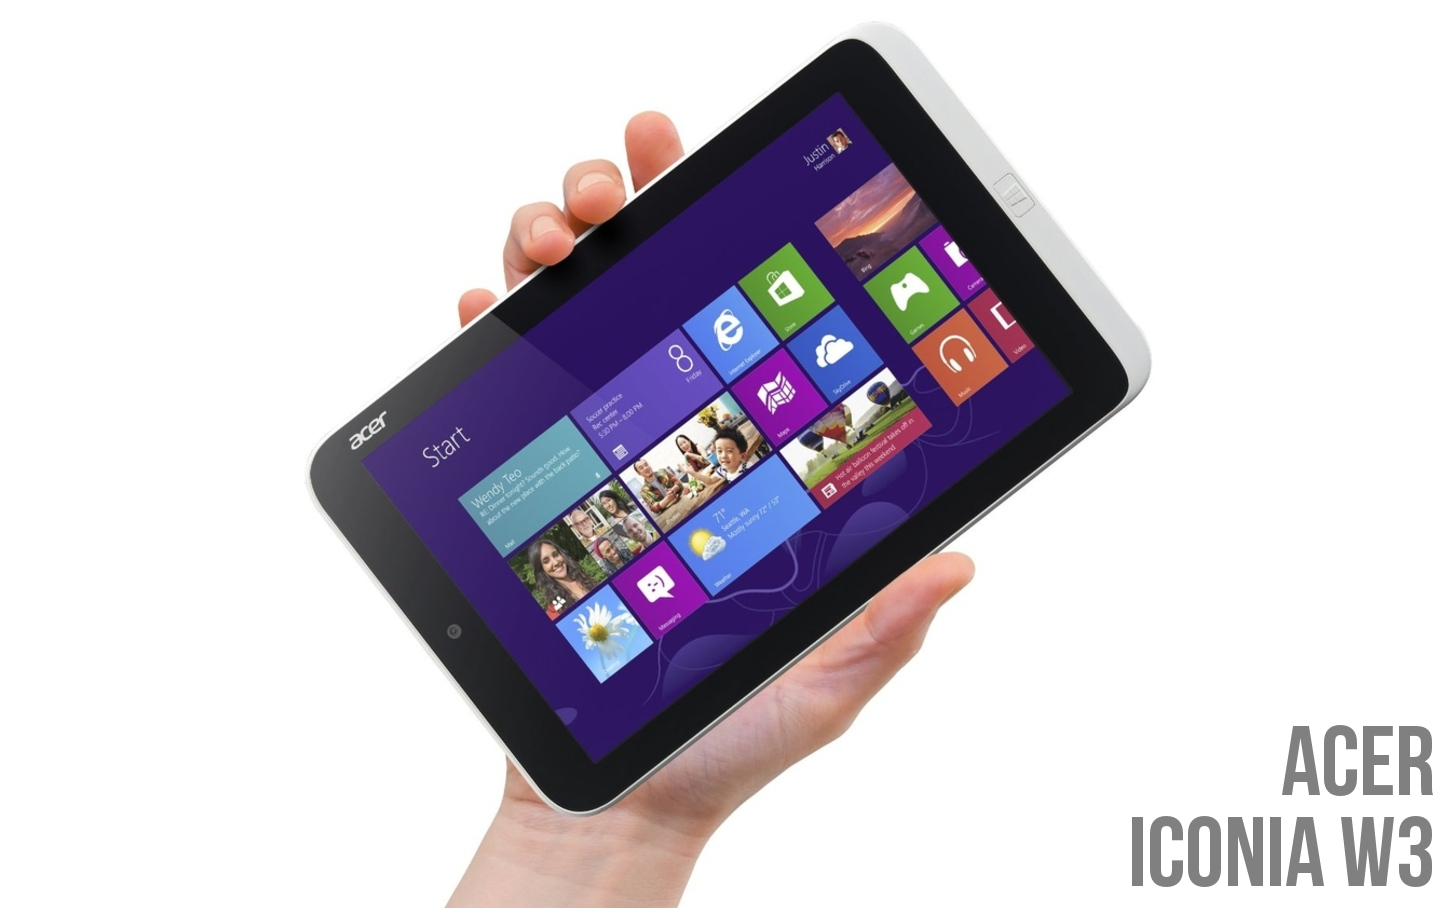 acer iconia w3 64gb model up for pre